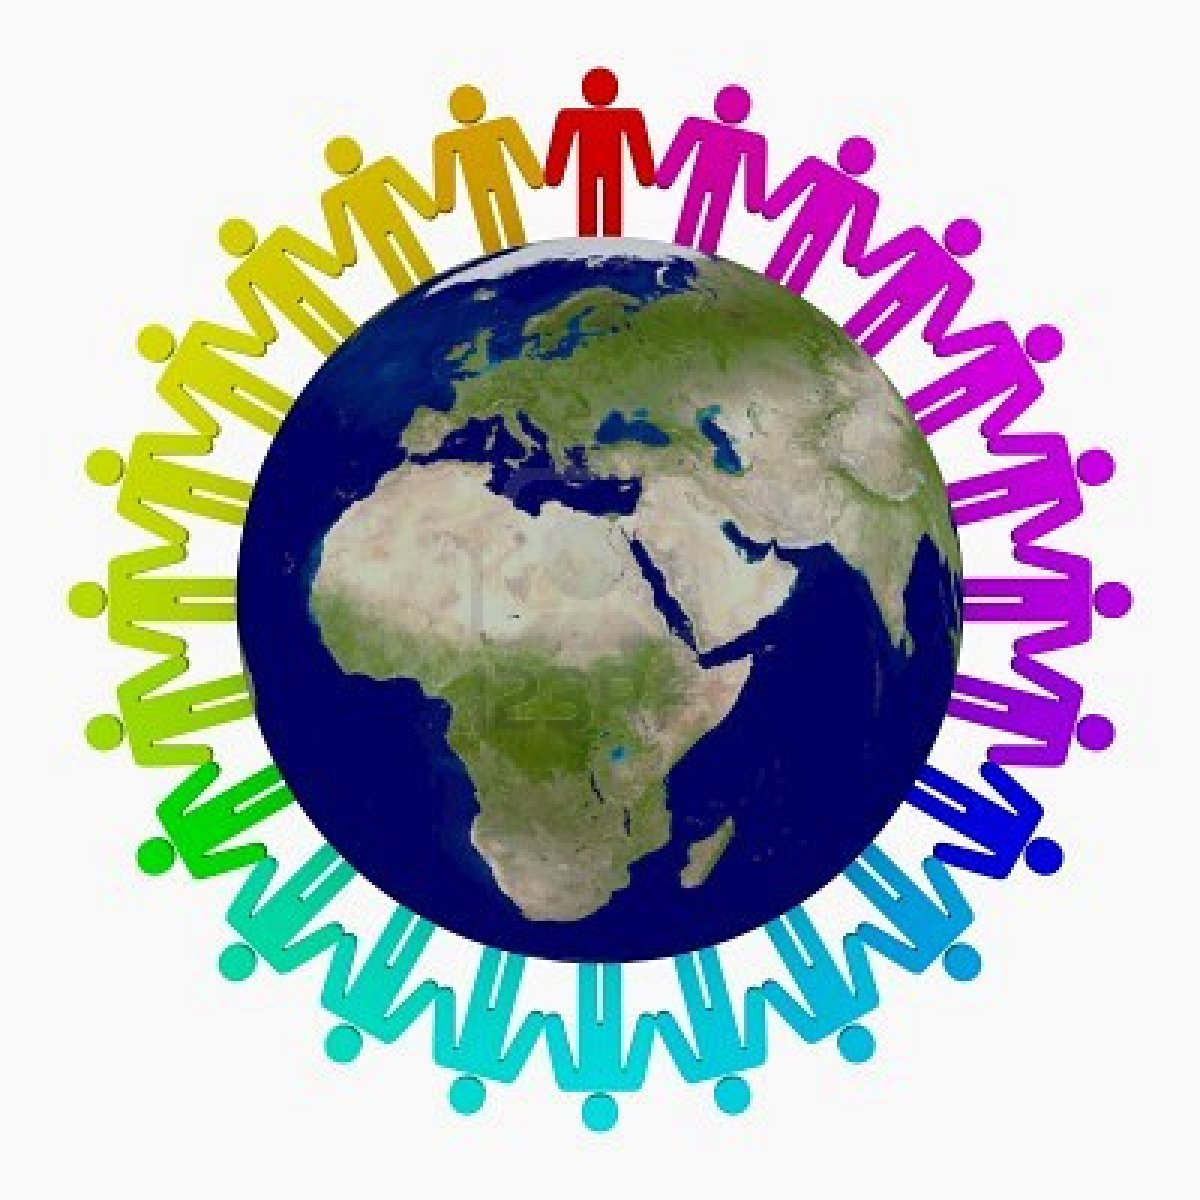 Clipart world holding hand around world. Images for circle of